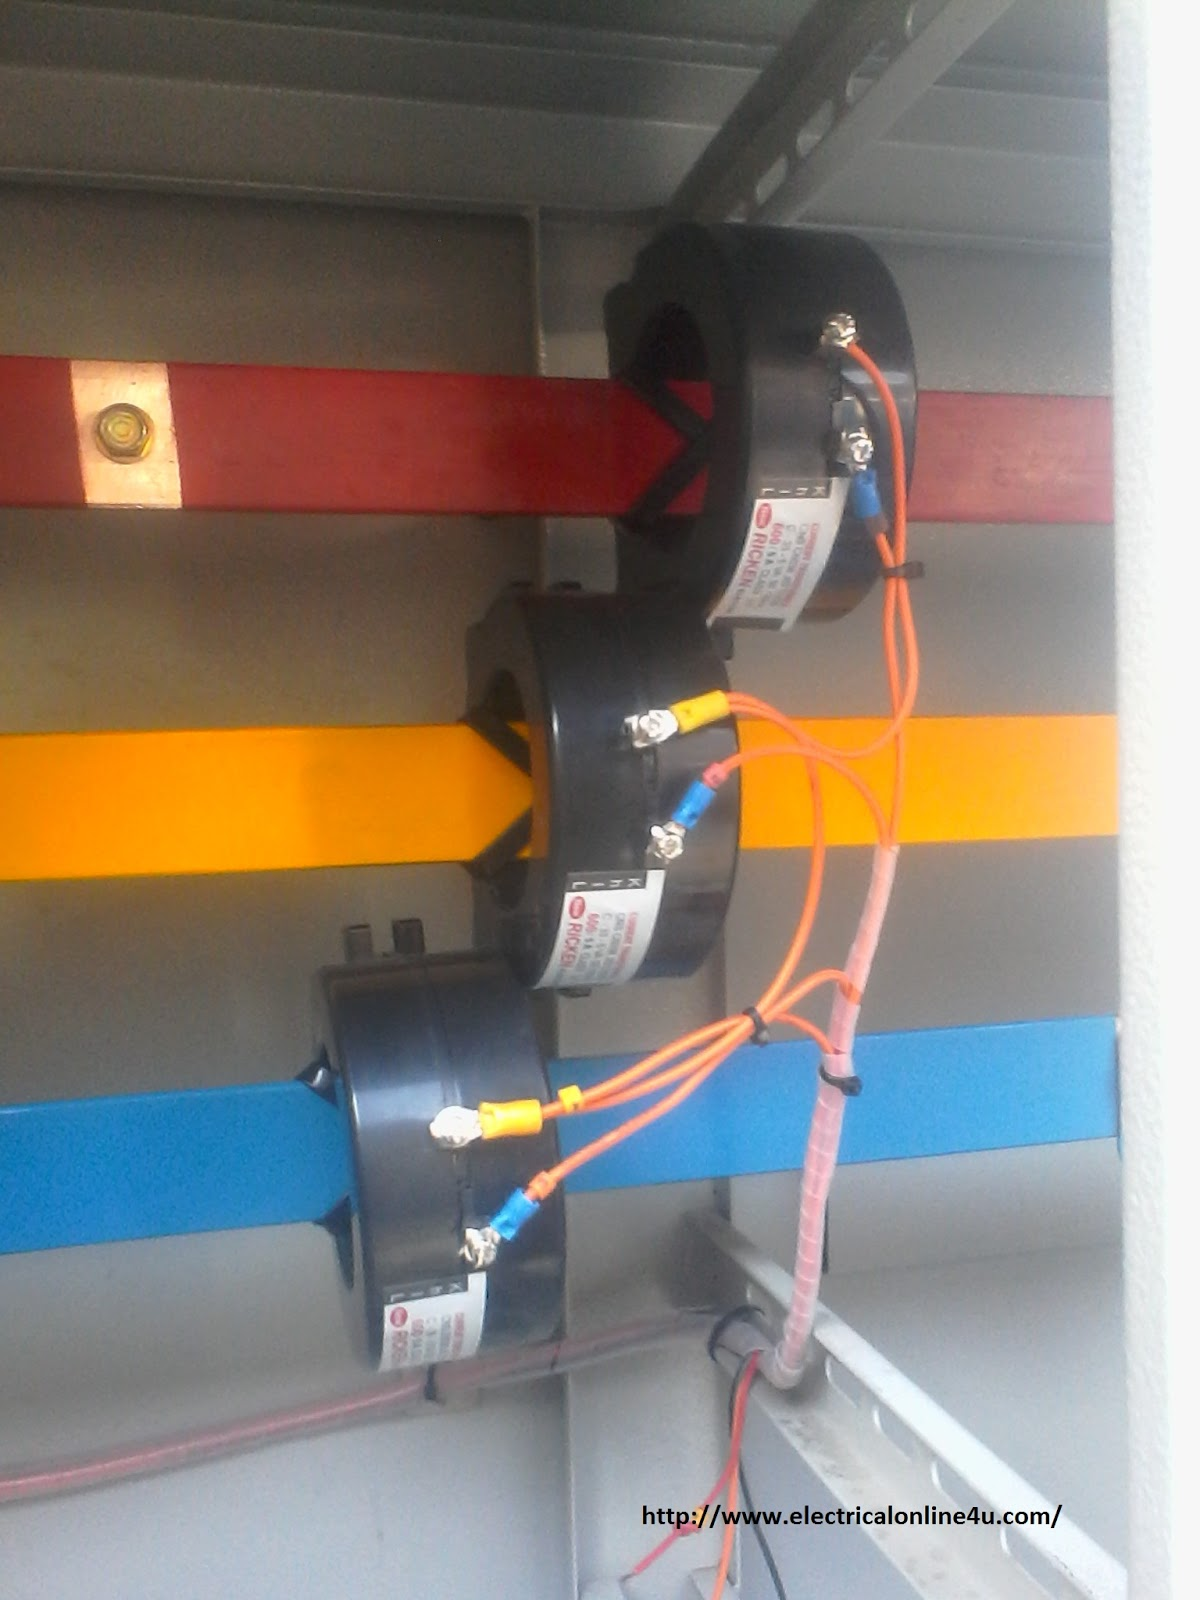 current%2Btransformer%2Binstillation%2Bfor%2Bthree%2Bphase%2Bwiring current transformer installation for three phase power supply ct Basic Electrical Wiring Diagrams at creativeand.co